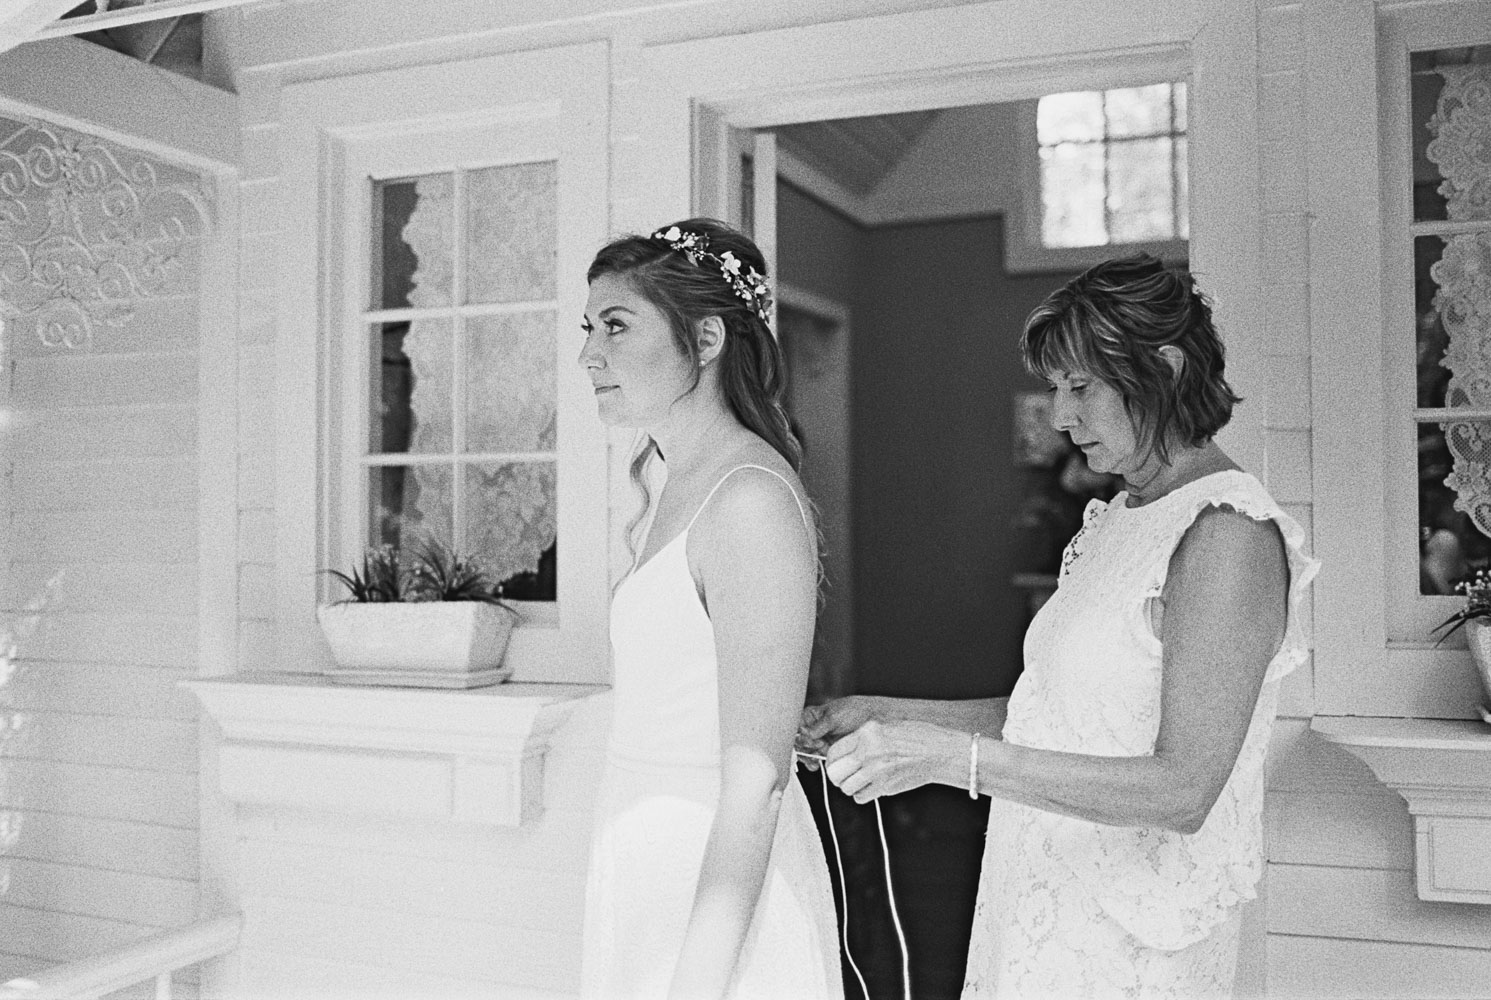 Mom ties bride's dress at Wellspring Spa Wedding Venue near Seattle